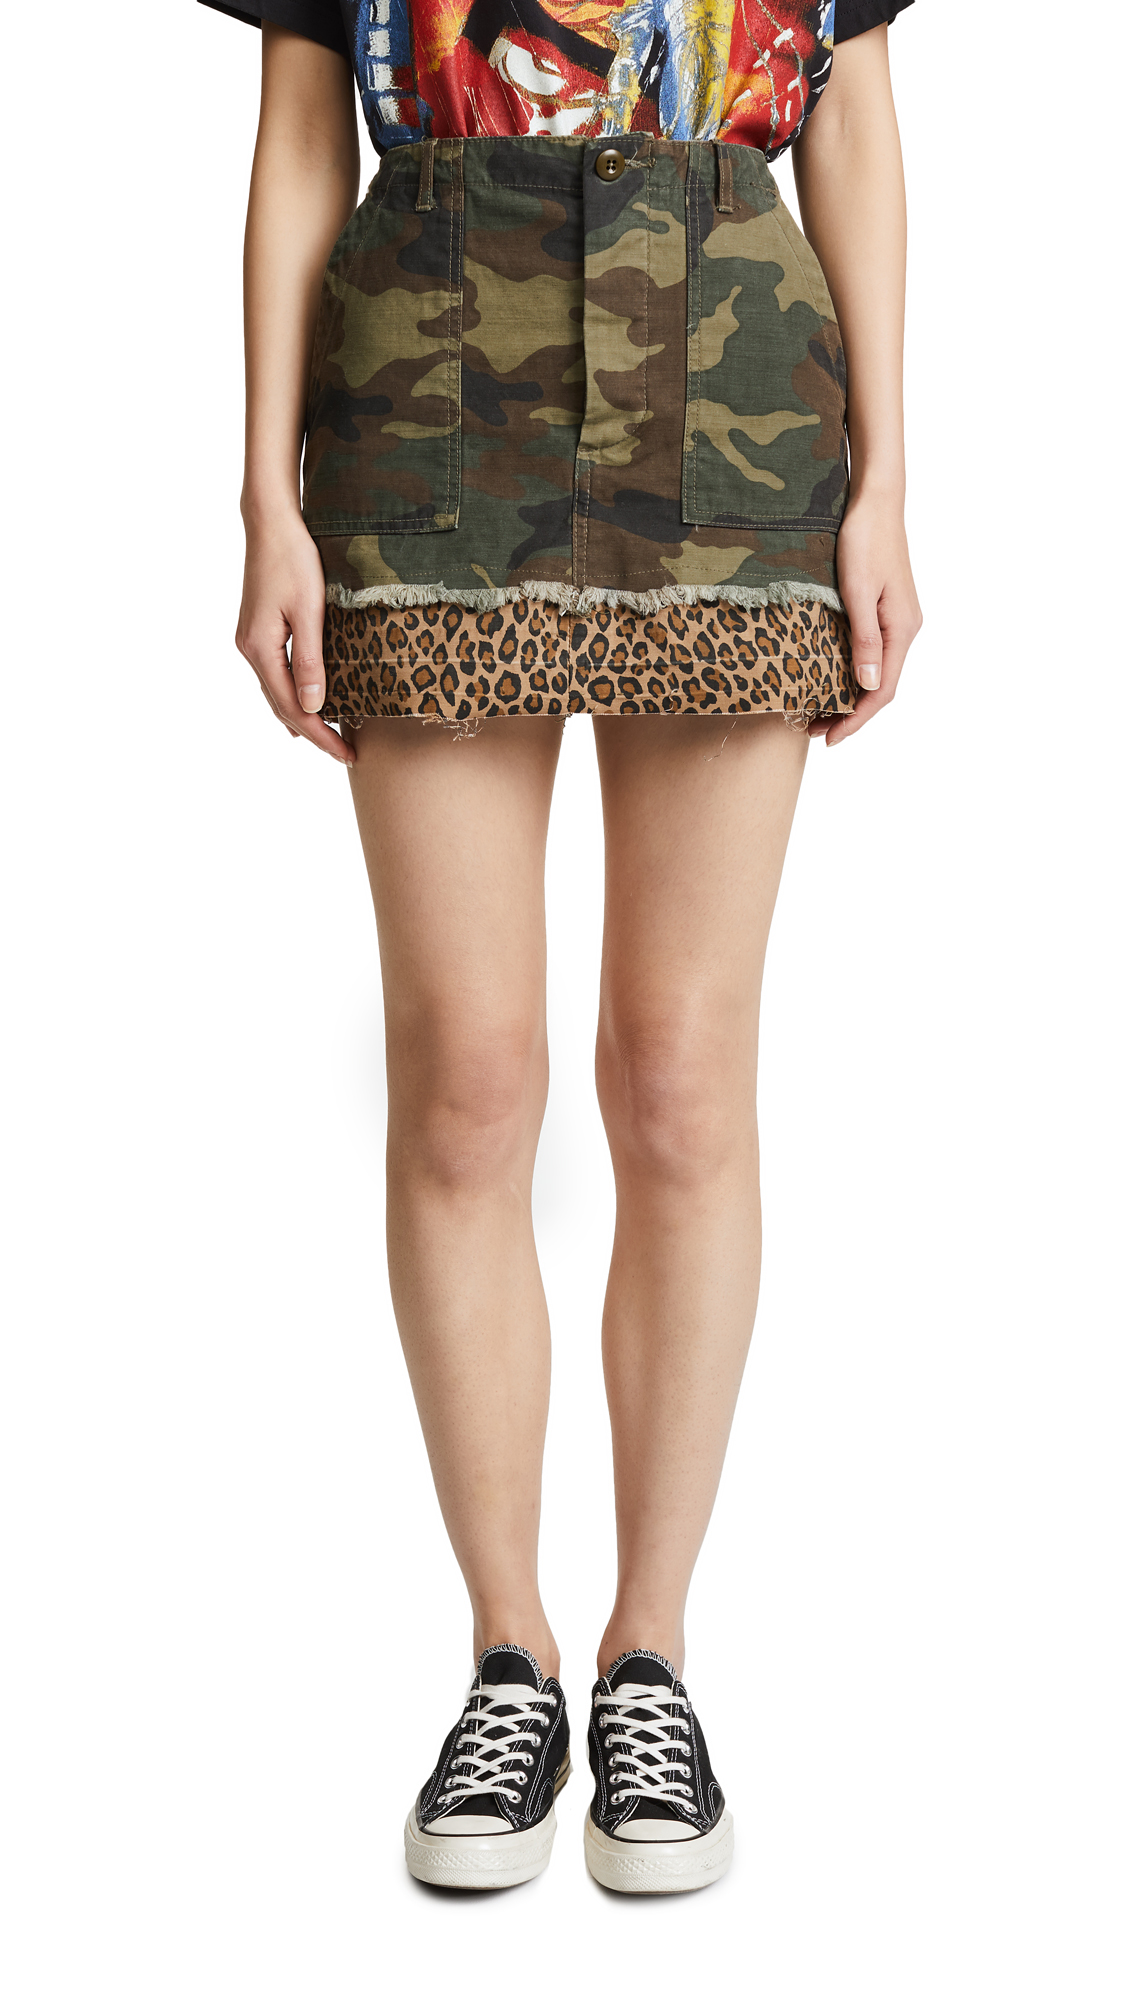 R13 Utility Camp Skirt In Camo/Leopard